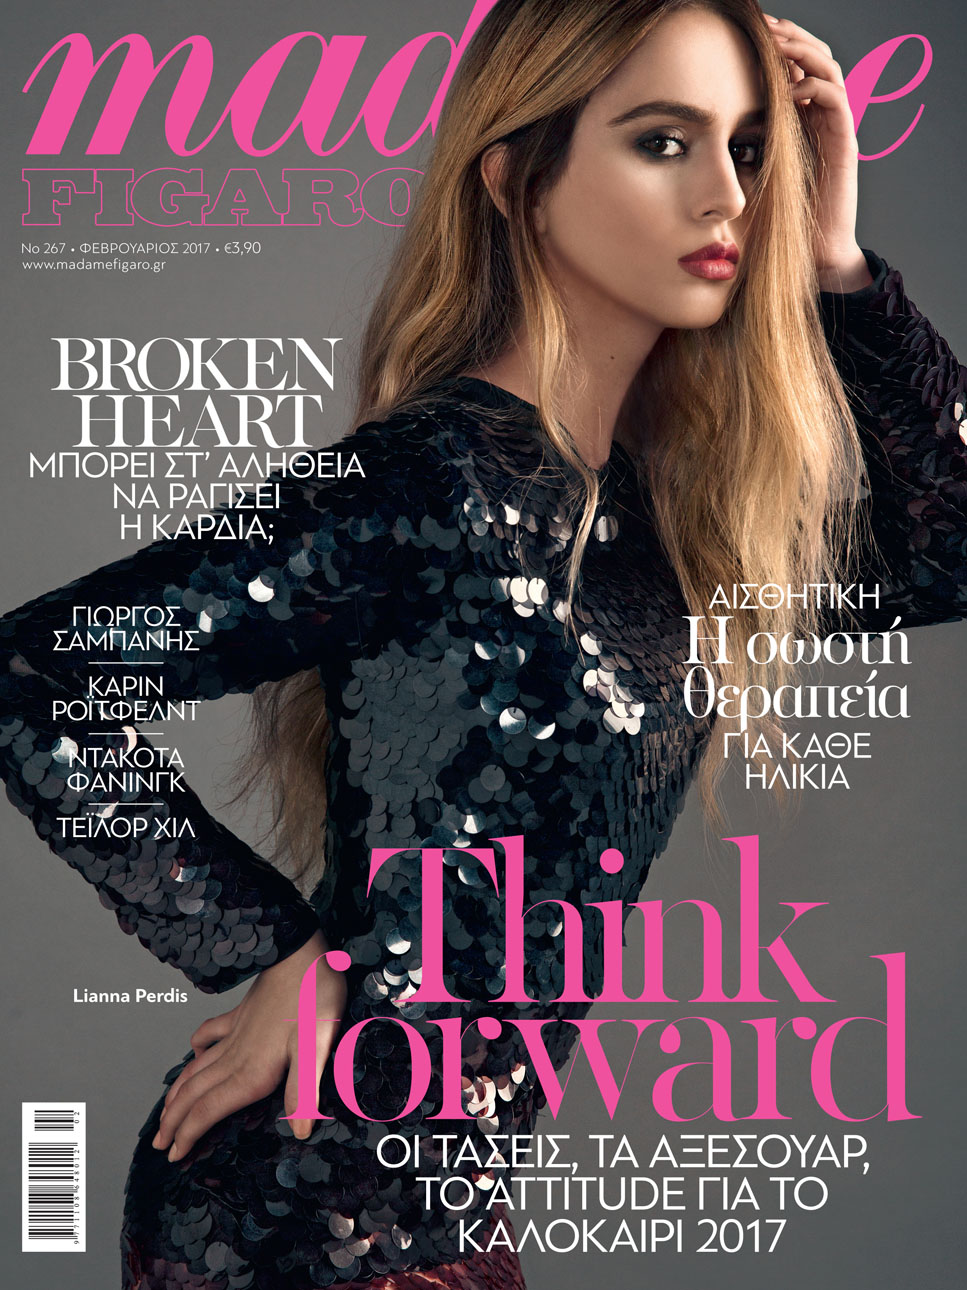 Cover girl :Liana Perdis on the cover of Madame Figaro